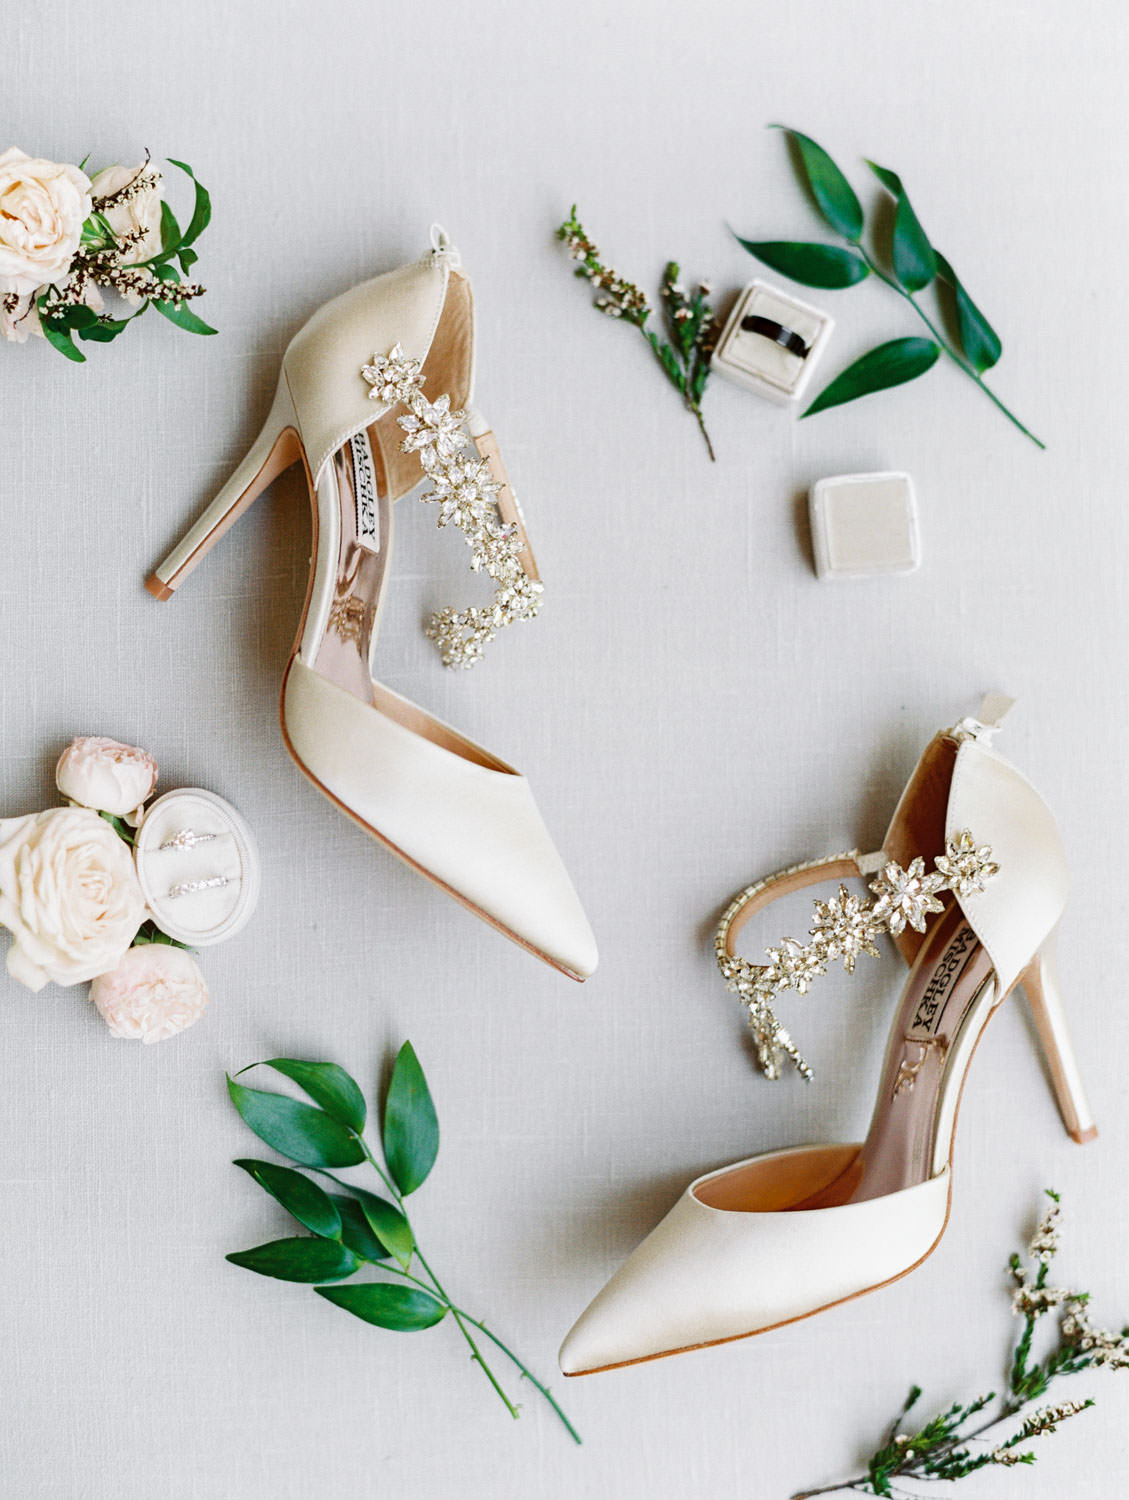 Brides Badgley Mischka Esperanza ivory heels with jewels styled with greenery. Wedding at Rancho Bernardo Inn. Film photo by Cavin Elizabeth Photography